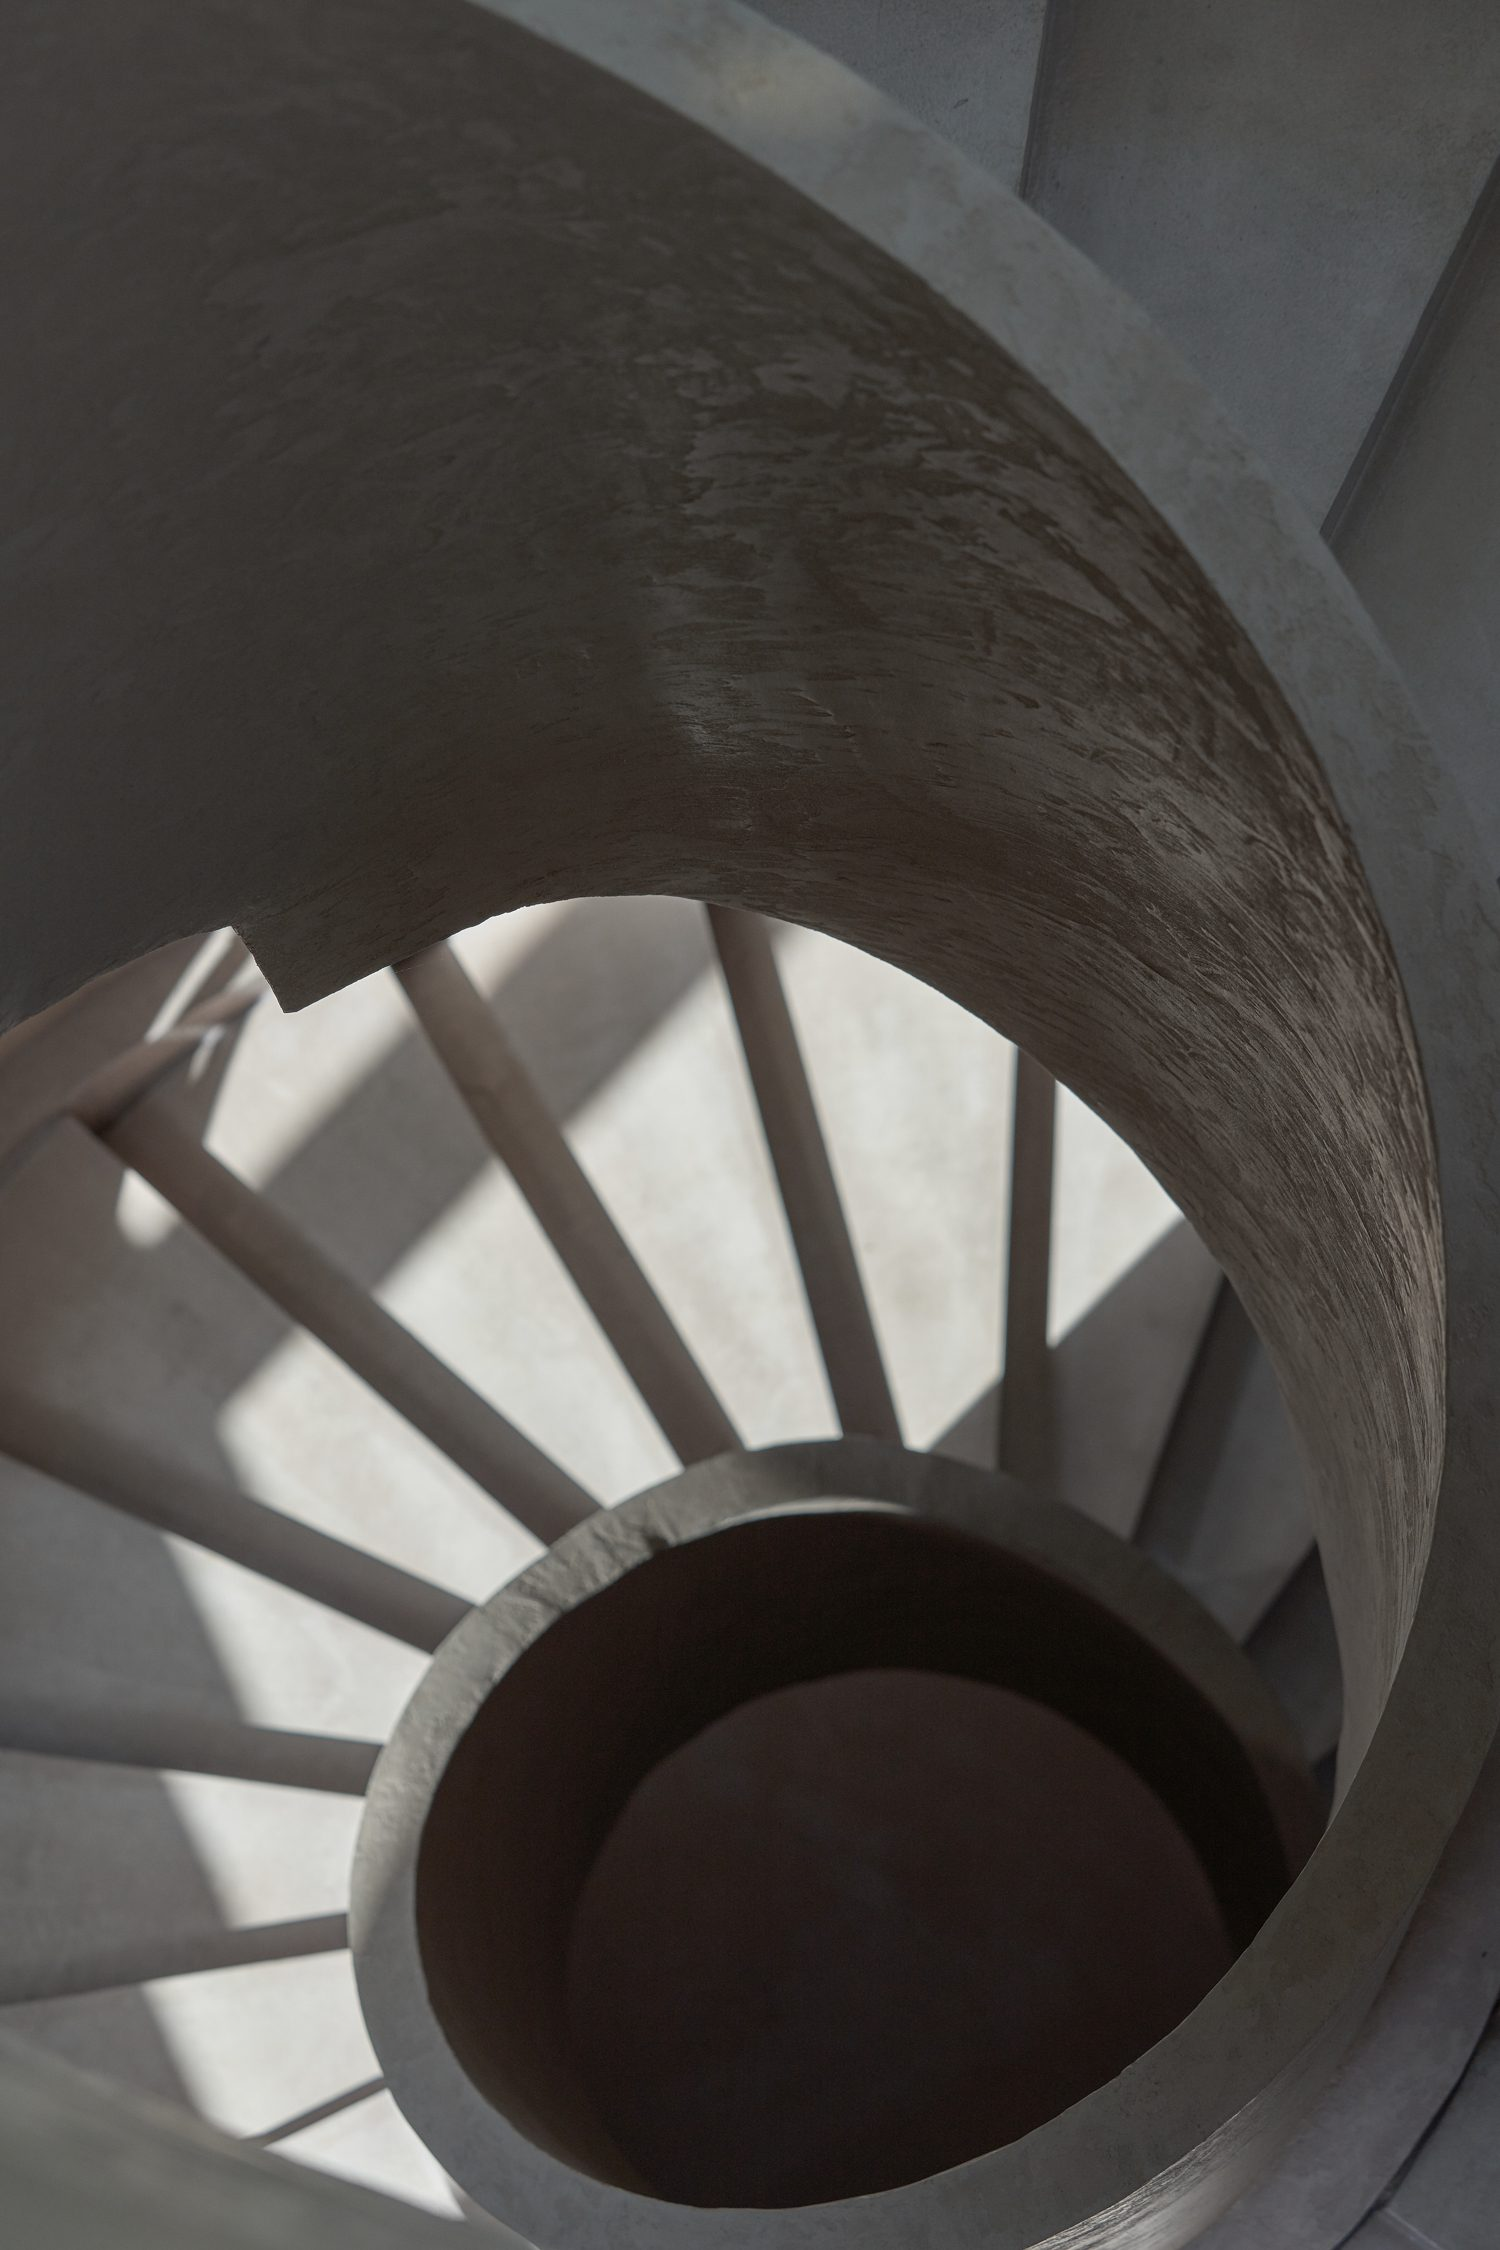 The microcement staircase leads to an upper level. Photography by Jun Sun.